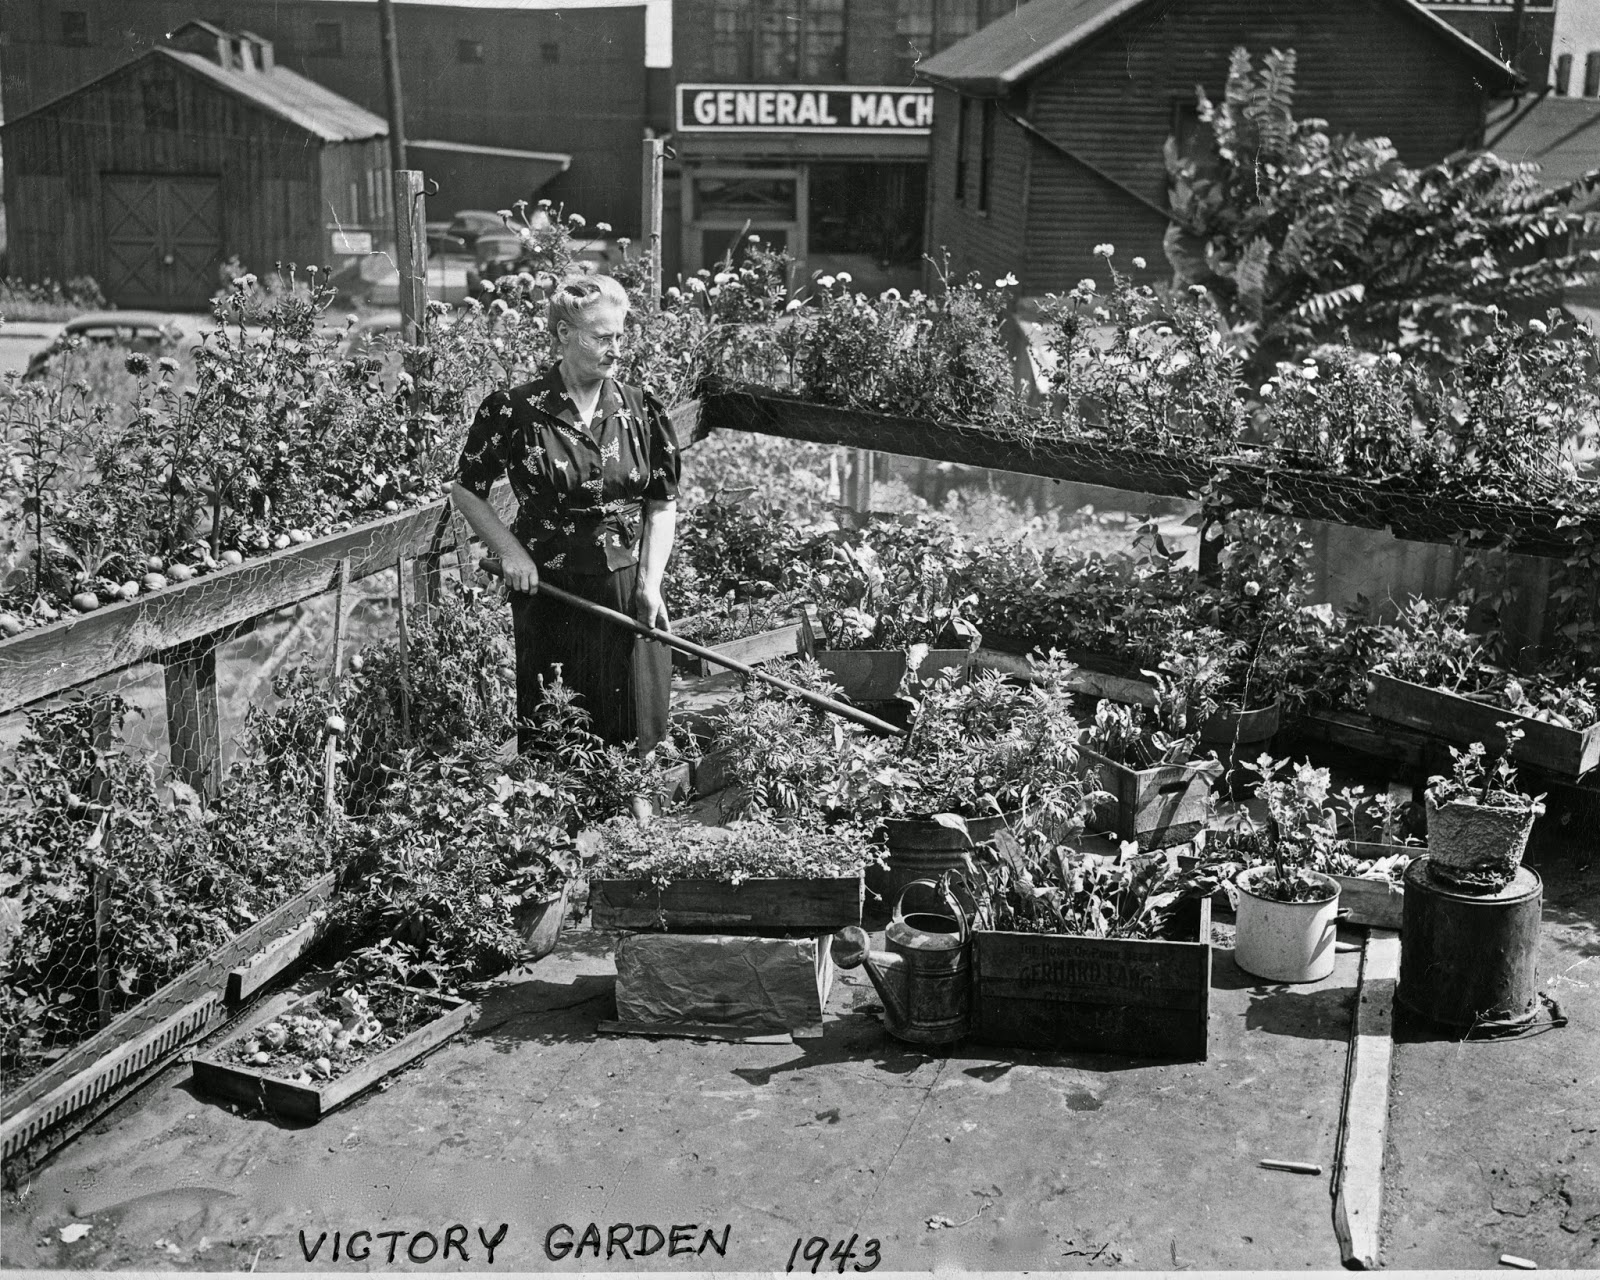 the victory garden - The Victory Garden